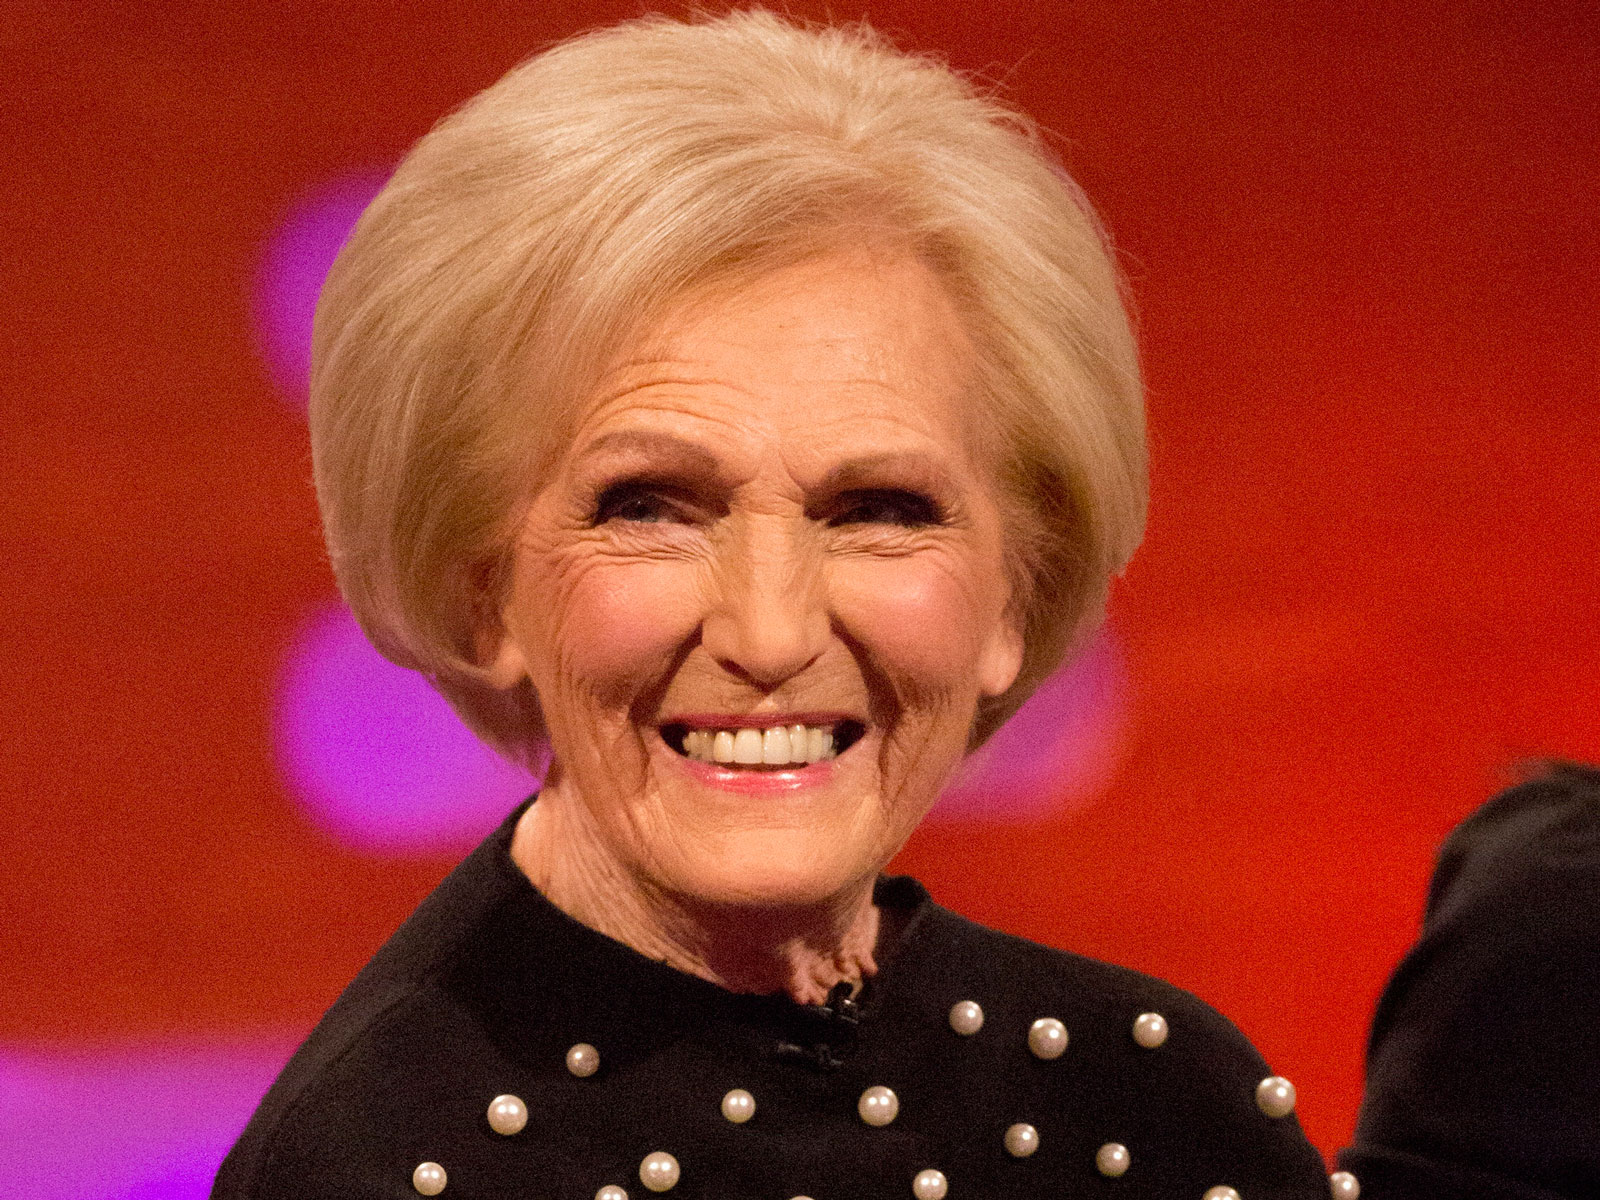 mary-berry-britains-best-home-cook-FT-BLOG0418.jpg